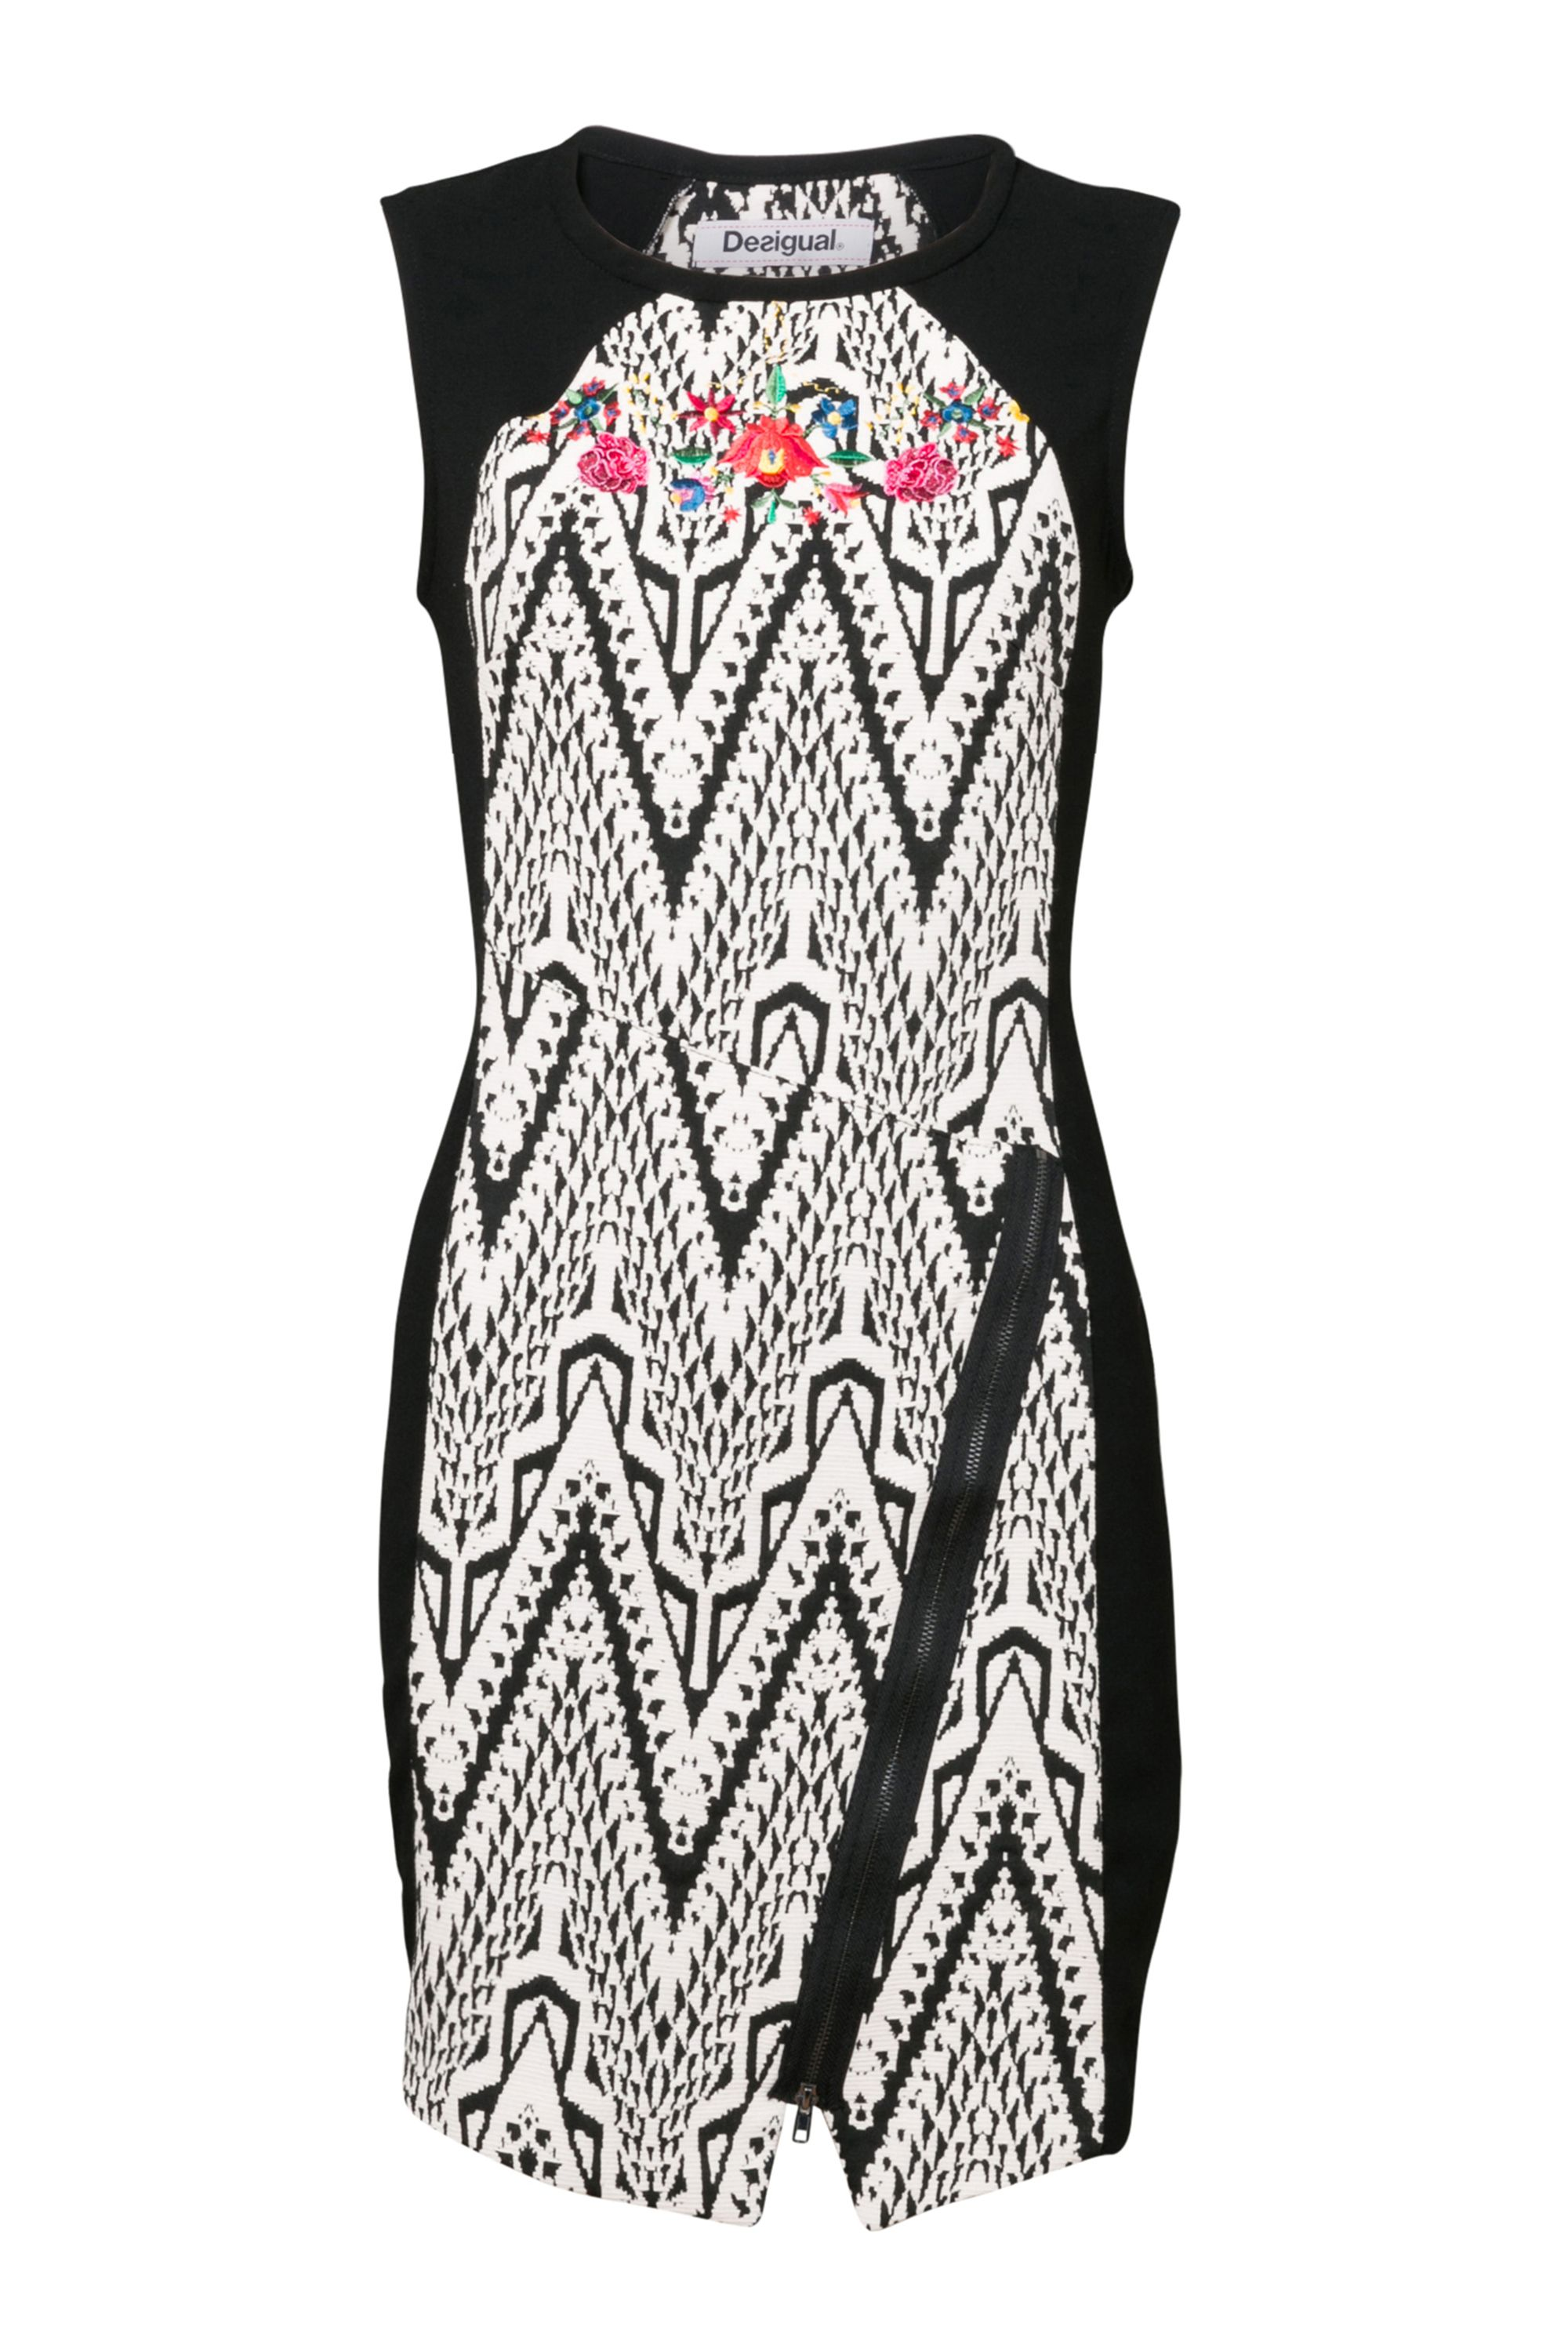 Desigual Dress Oregon, Black